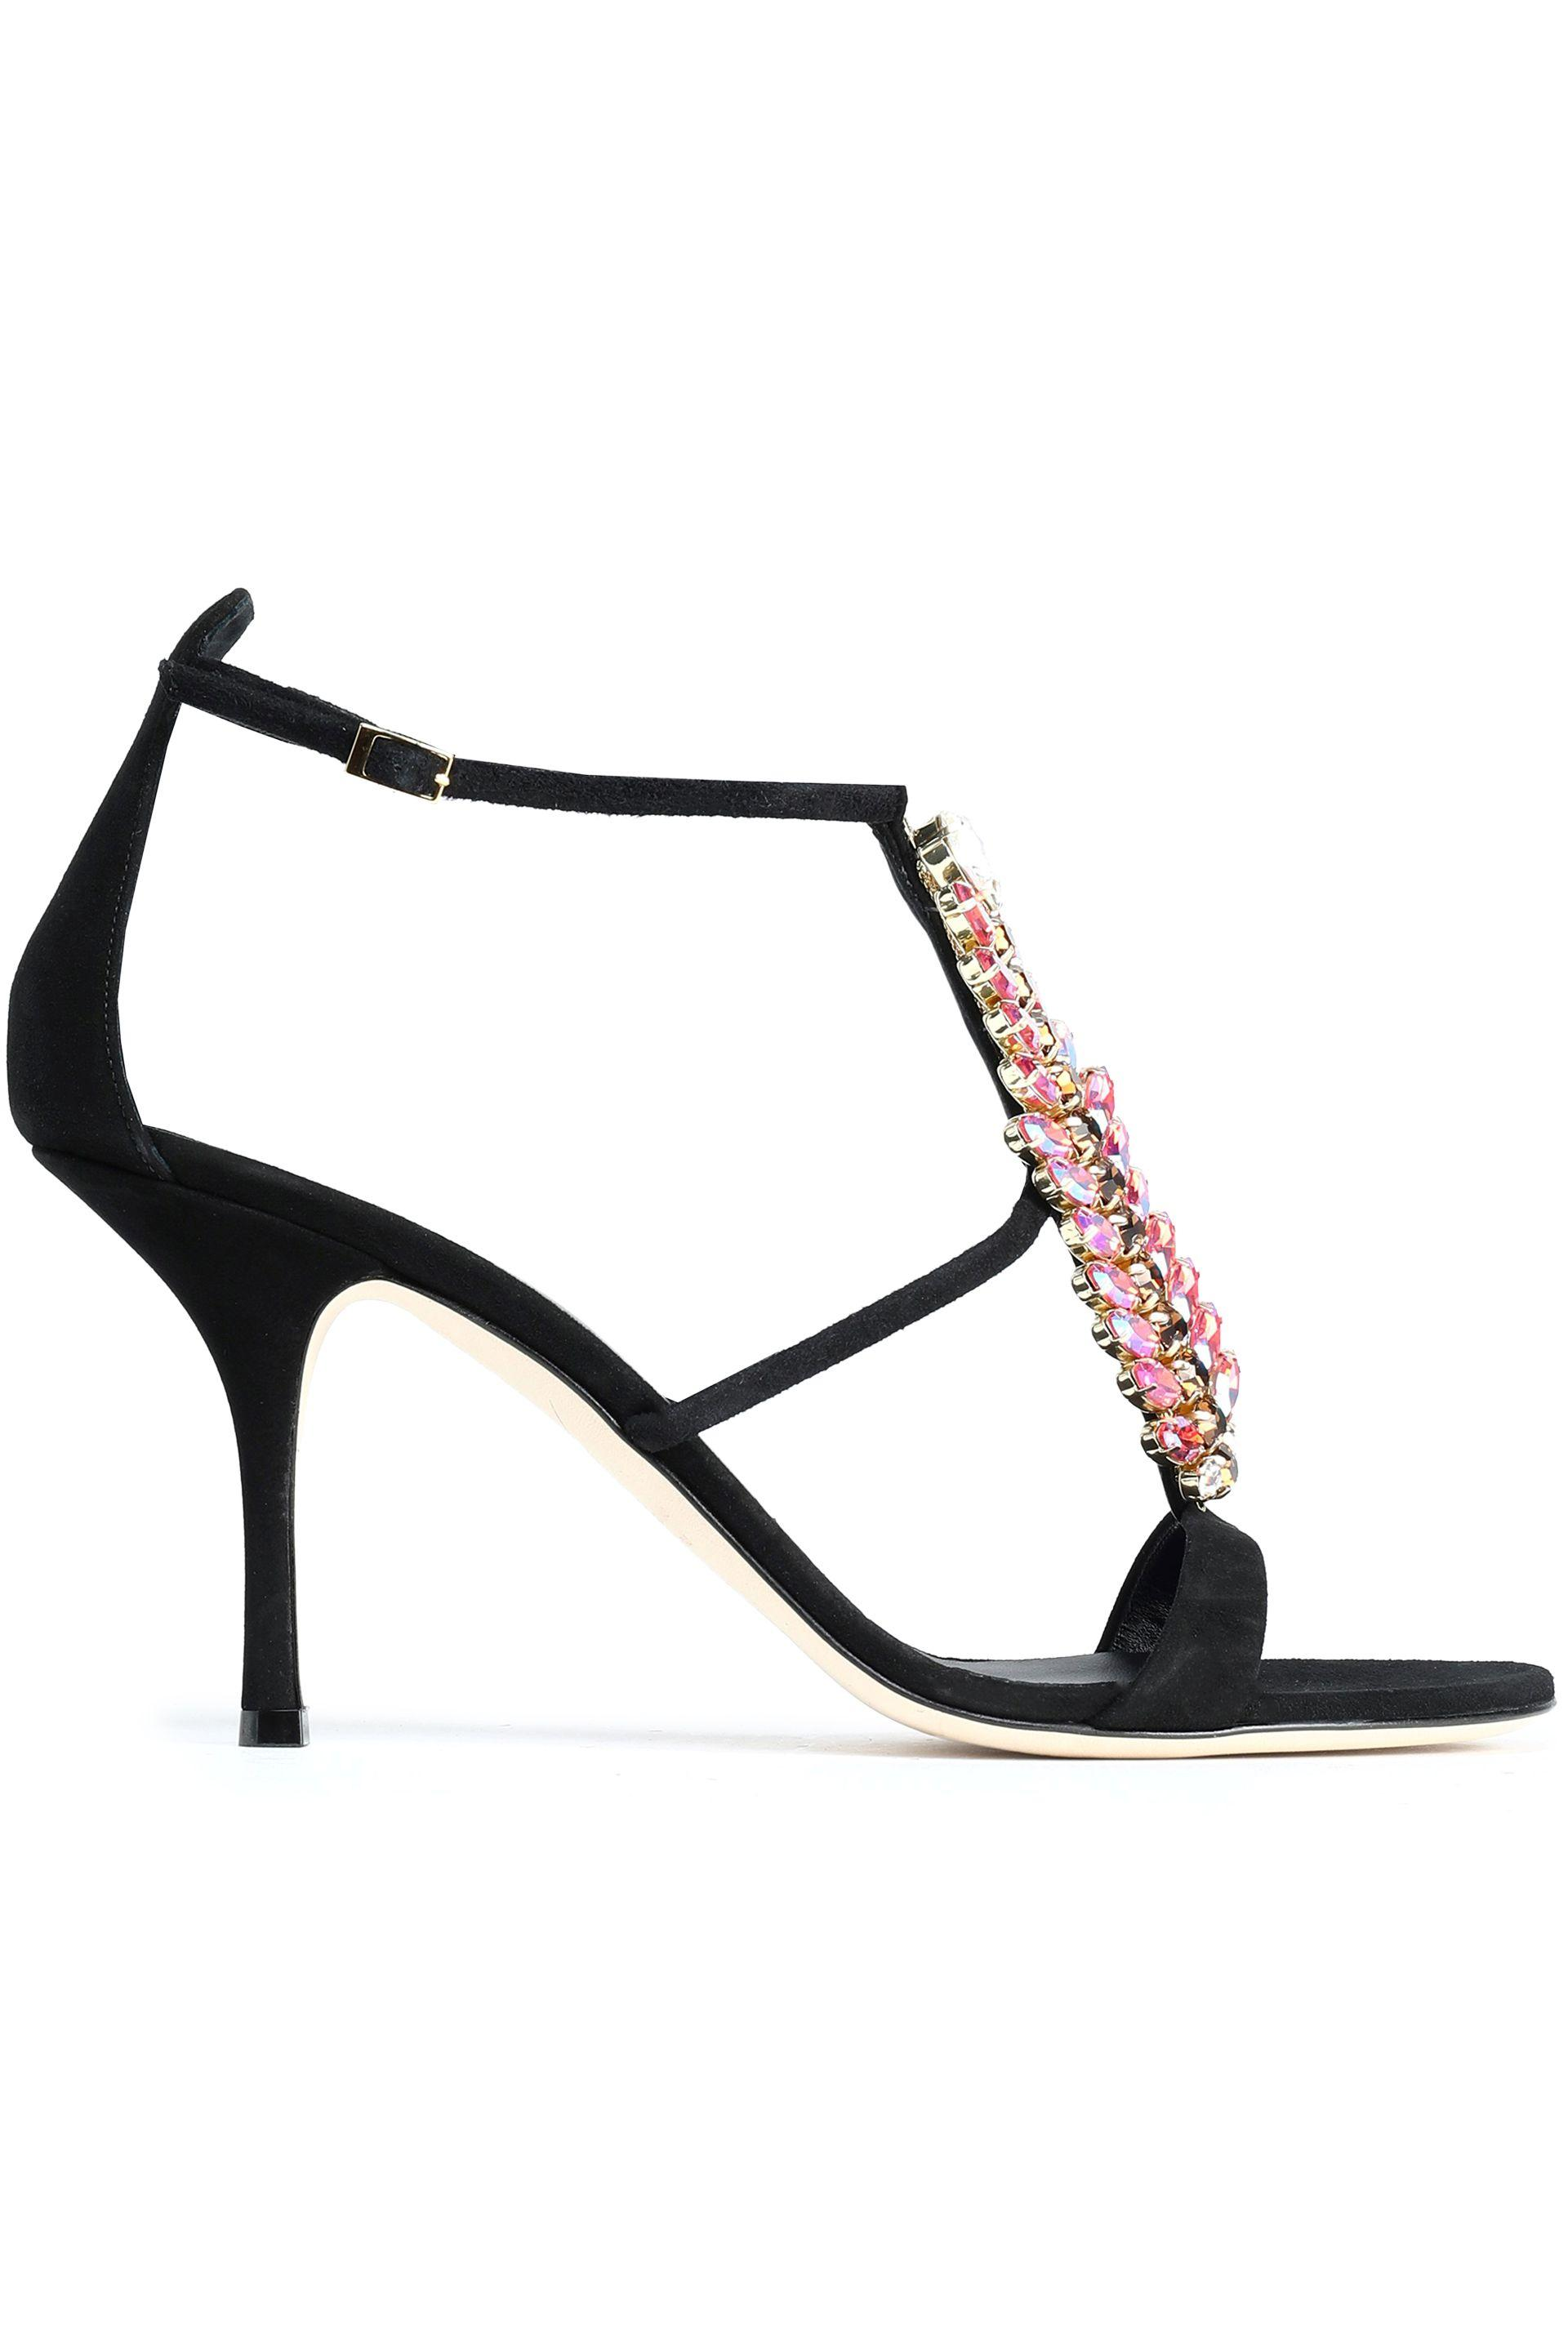 cc417a645d giuseppe-zanotti-Black-Woman-Crystal-embellished-Suede-Sandals-Black.jpeg